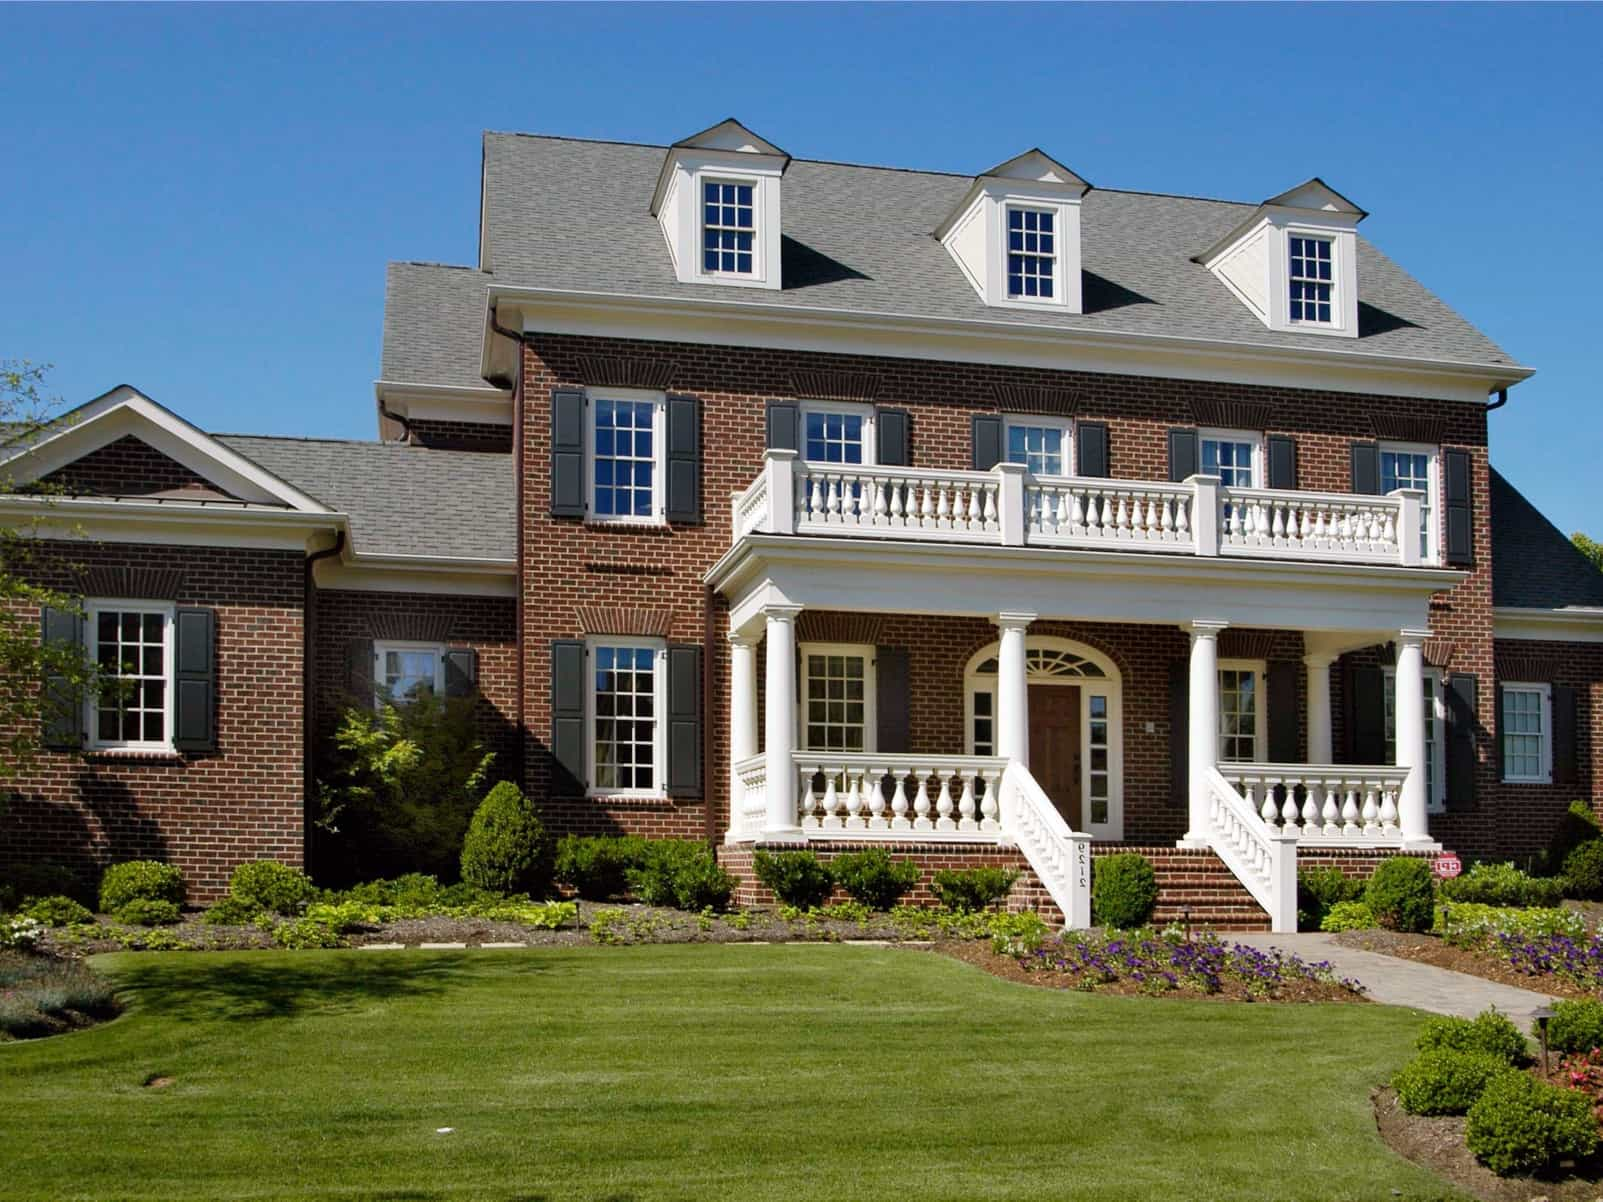 Brick House Architecture With White Pillars For Front Porch And ...